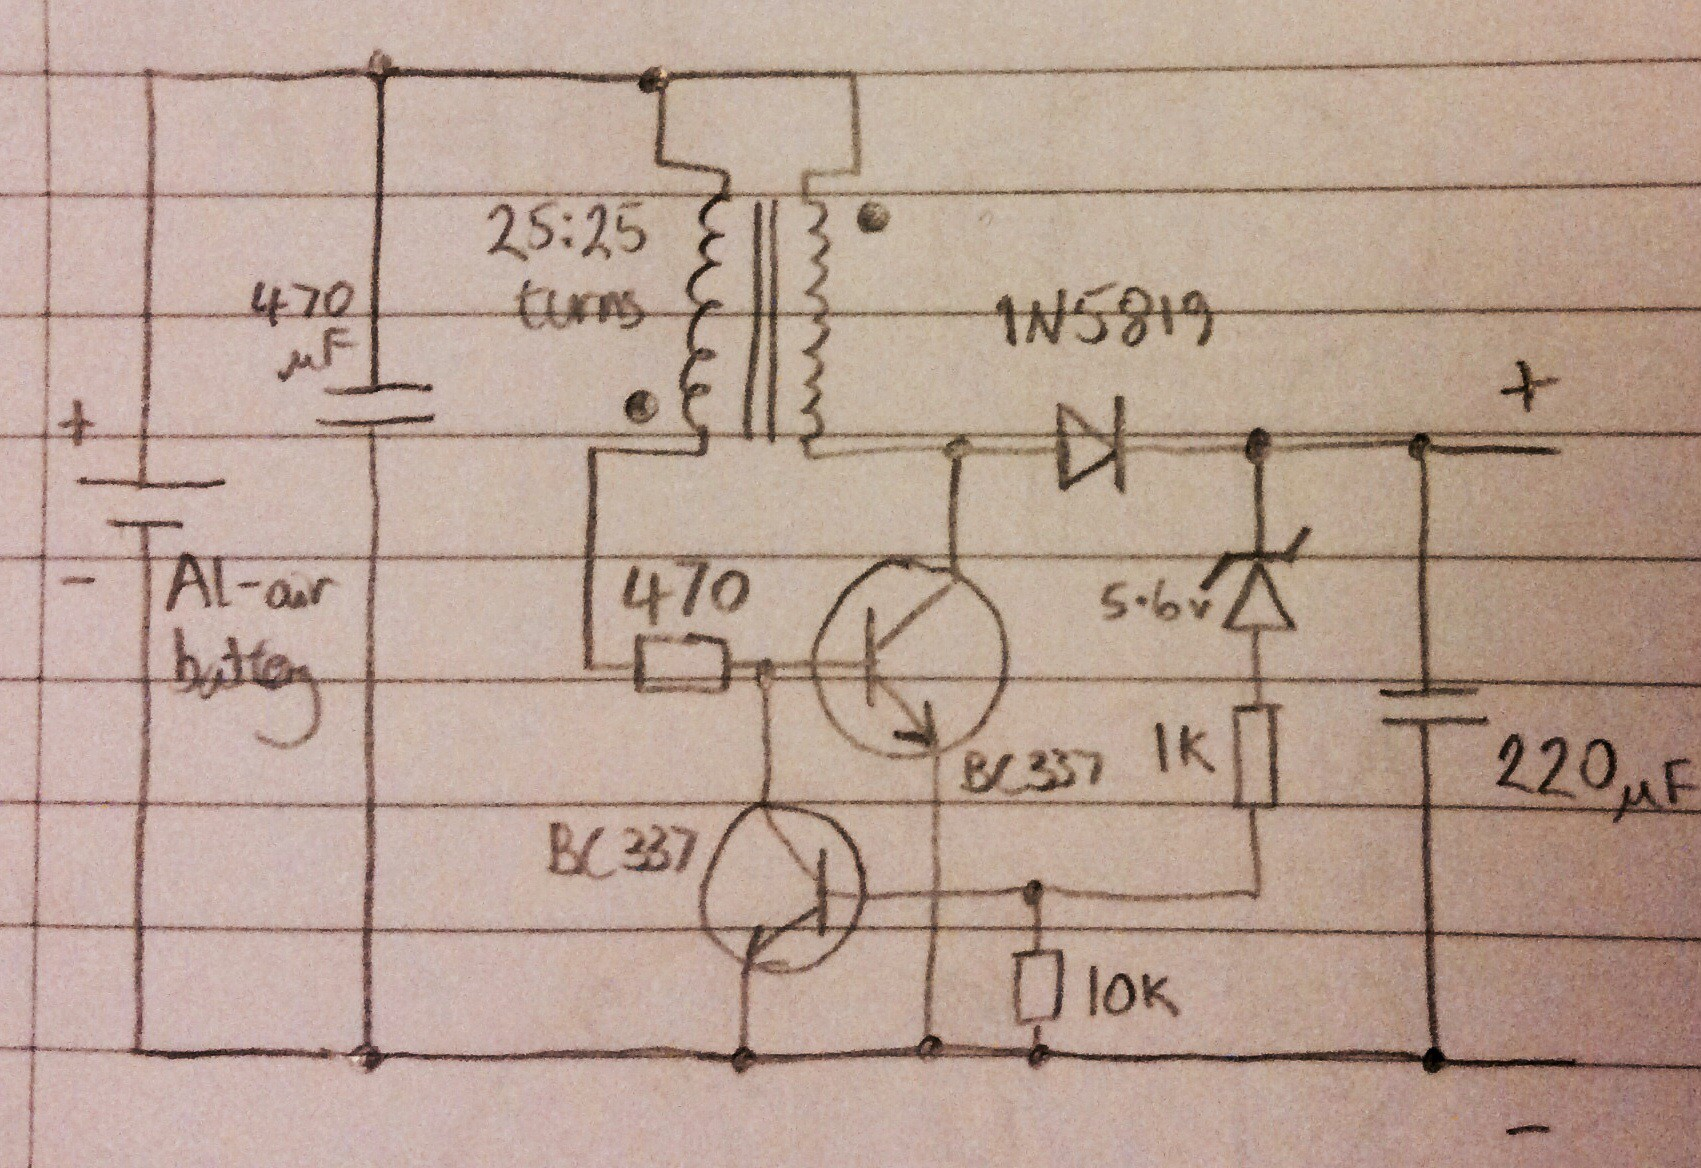 Joule Thief With Regulated Output Details Circuit Diagram Currents In The Darlington Pair This Is A More Efficient Than My First Attempt Shown An Earlier Log Entry Efficiency Of Ie Power From